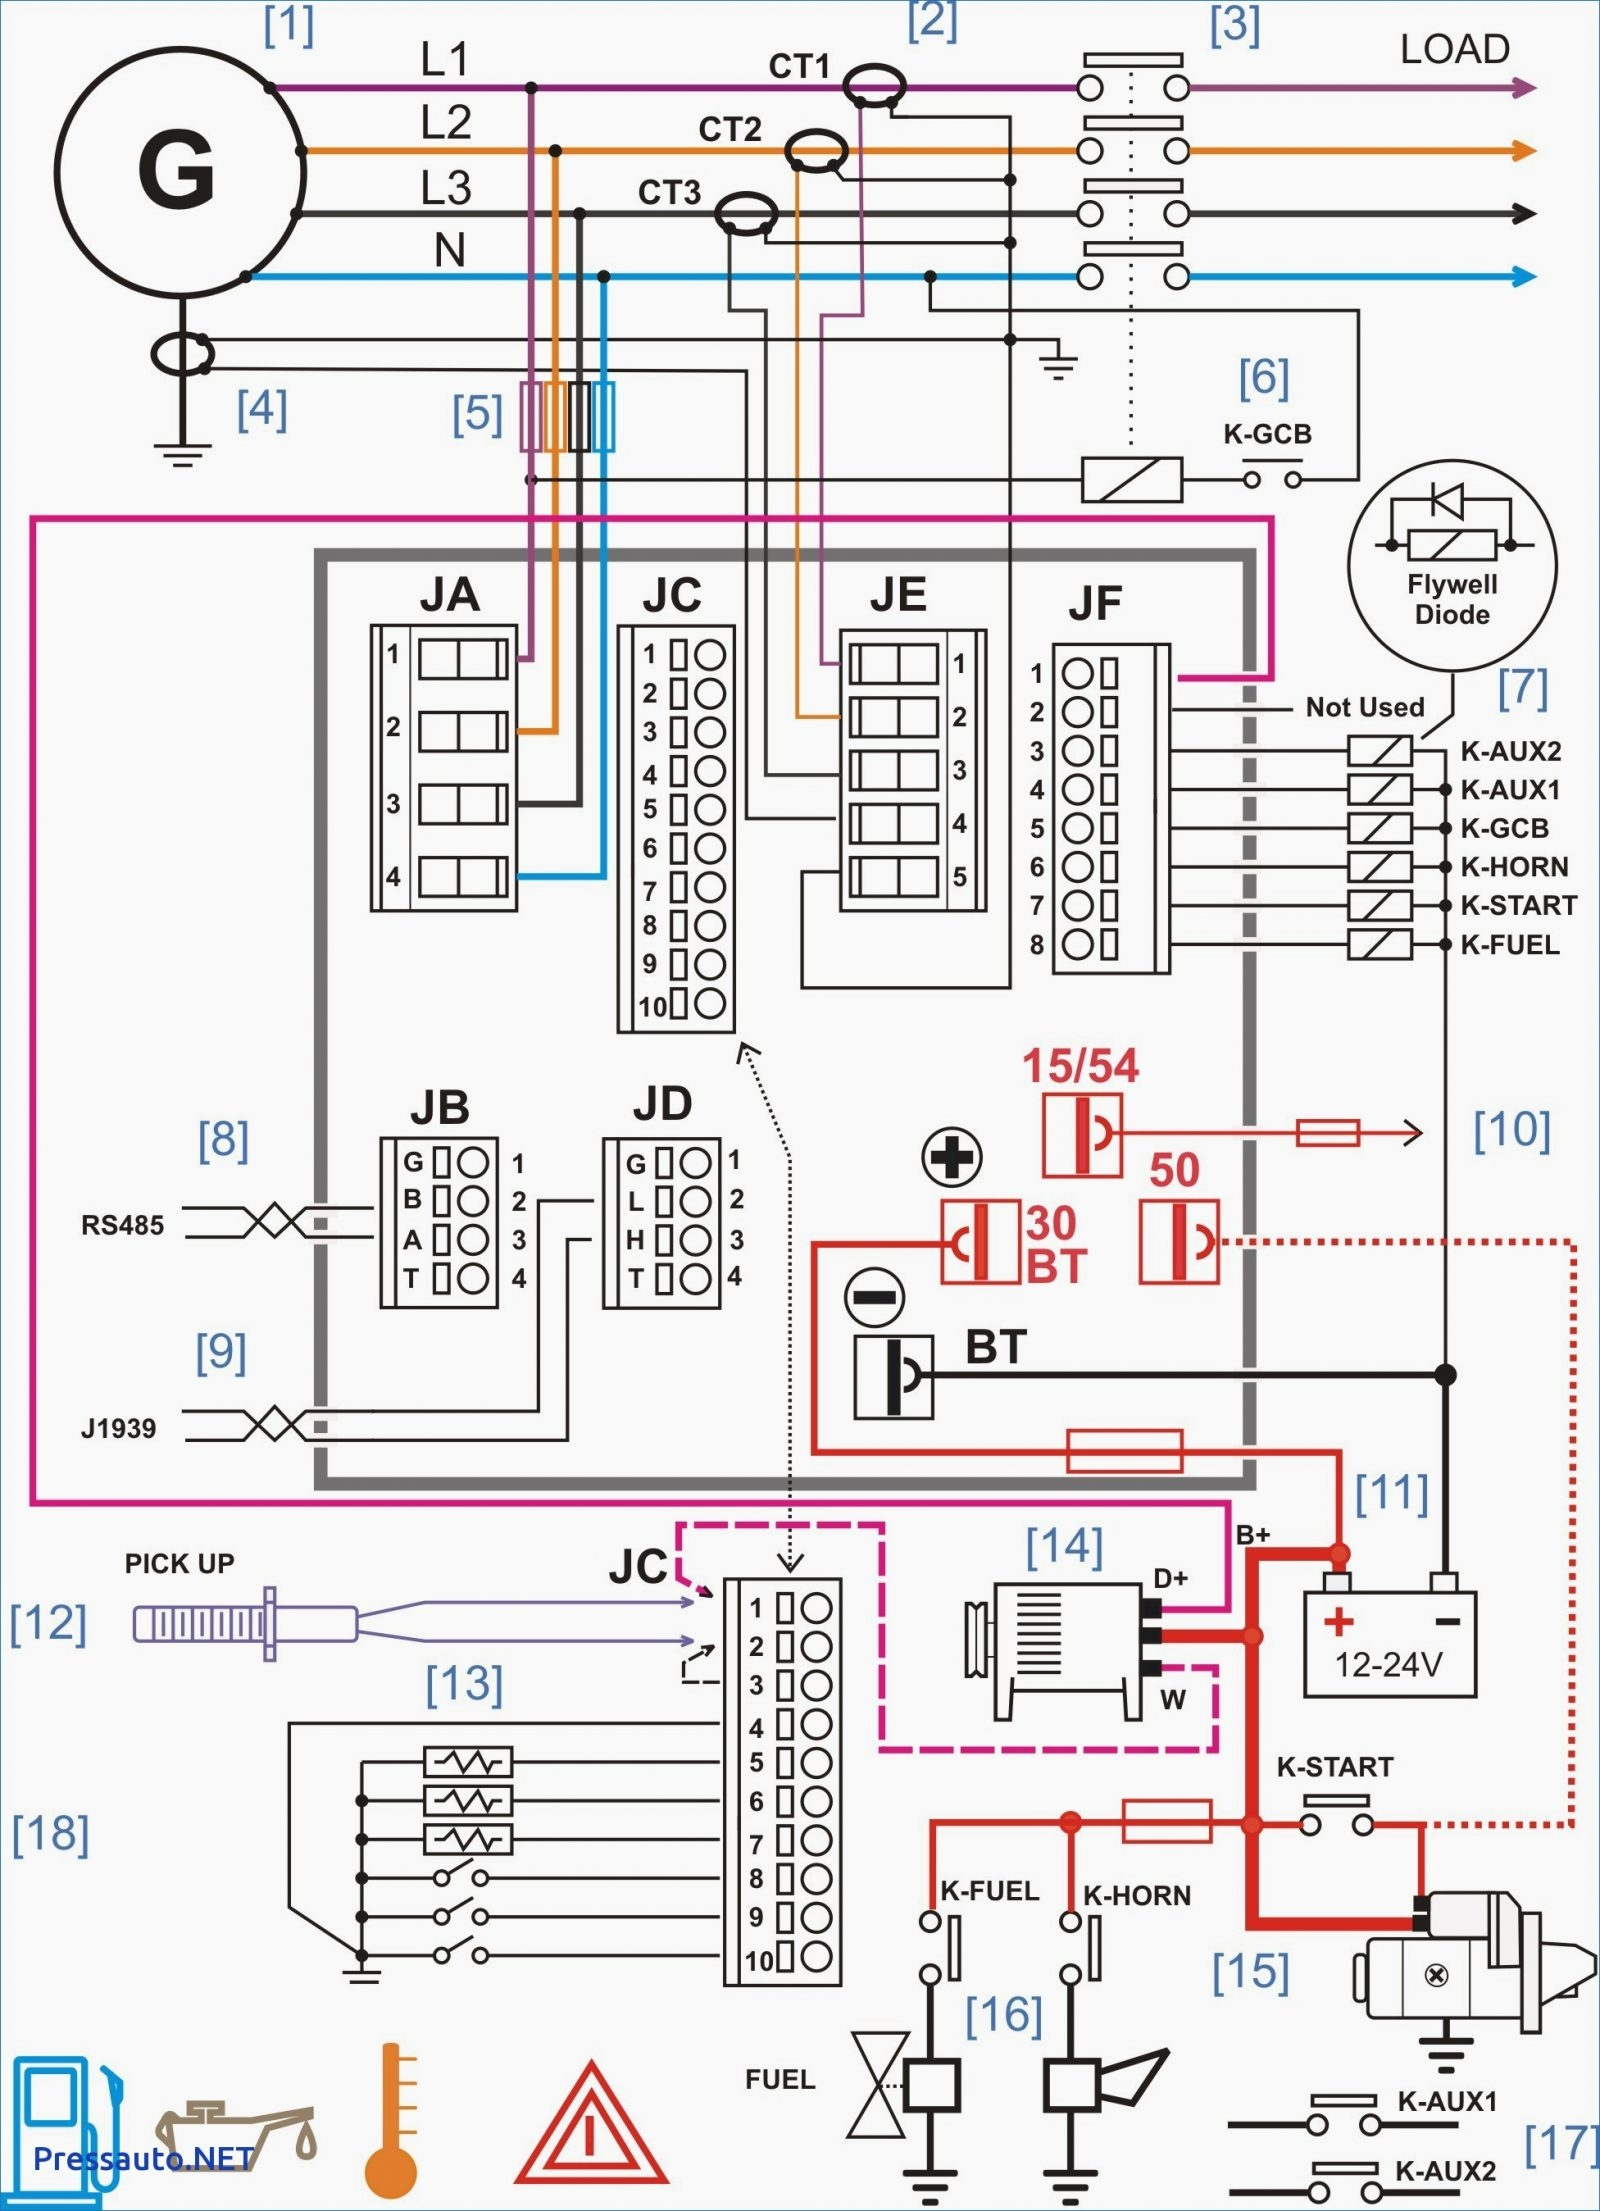 asco automatic transfer switch wiring diagram Download-Asco Automatic Transfer Switch Series 300 Wiring Diagram asco 7000 Series Automatic Transfer Switch Wiring 12-o